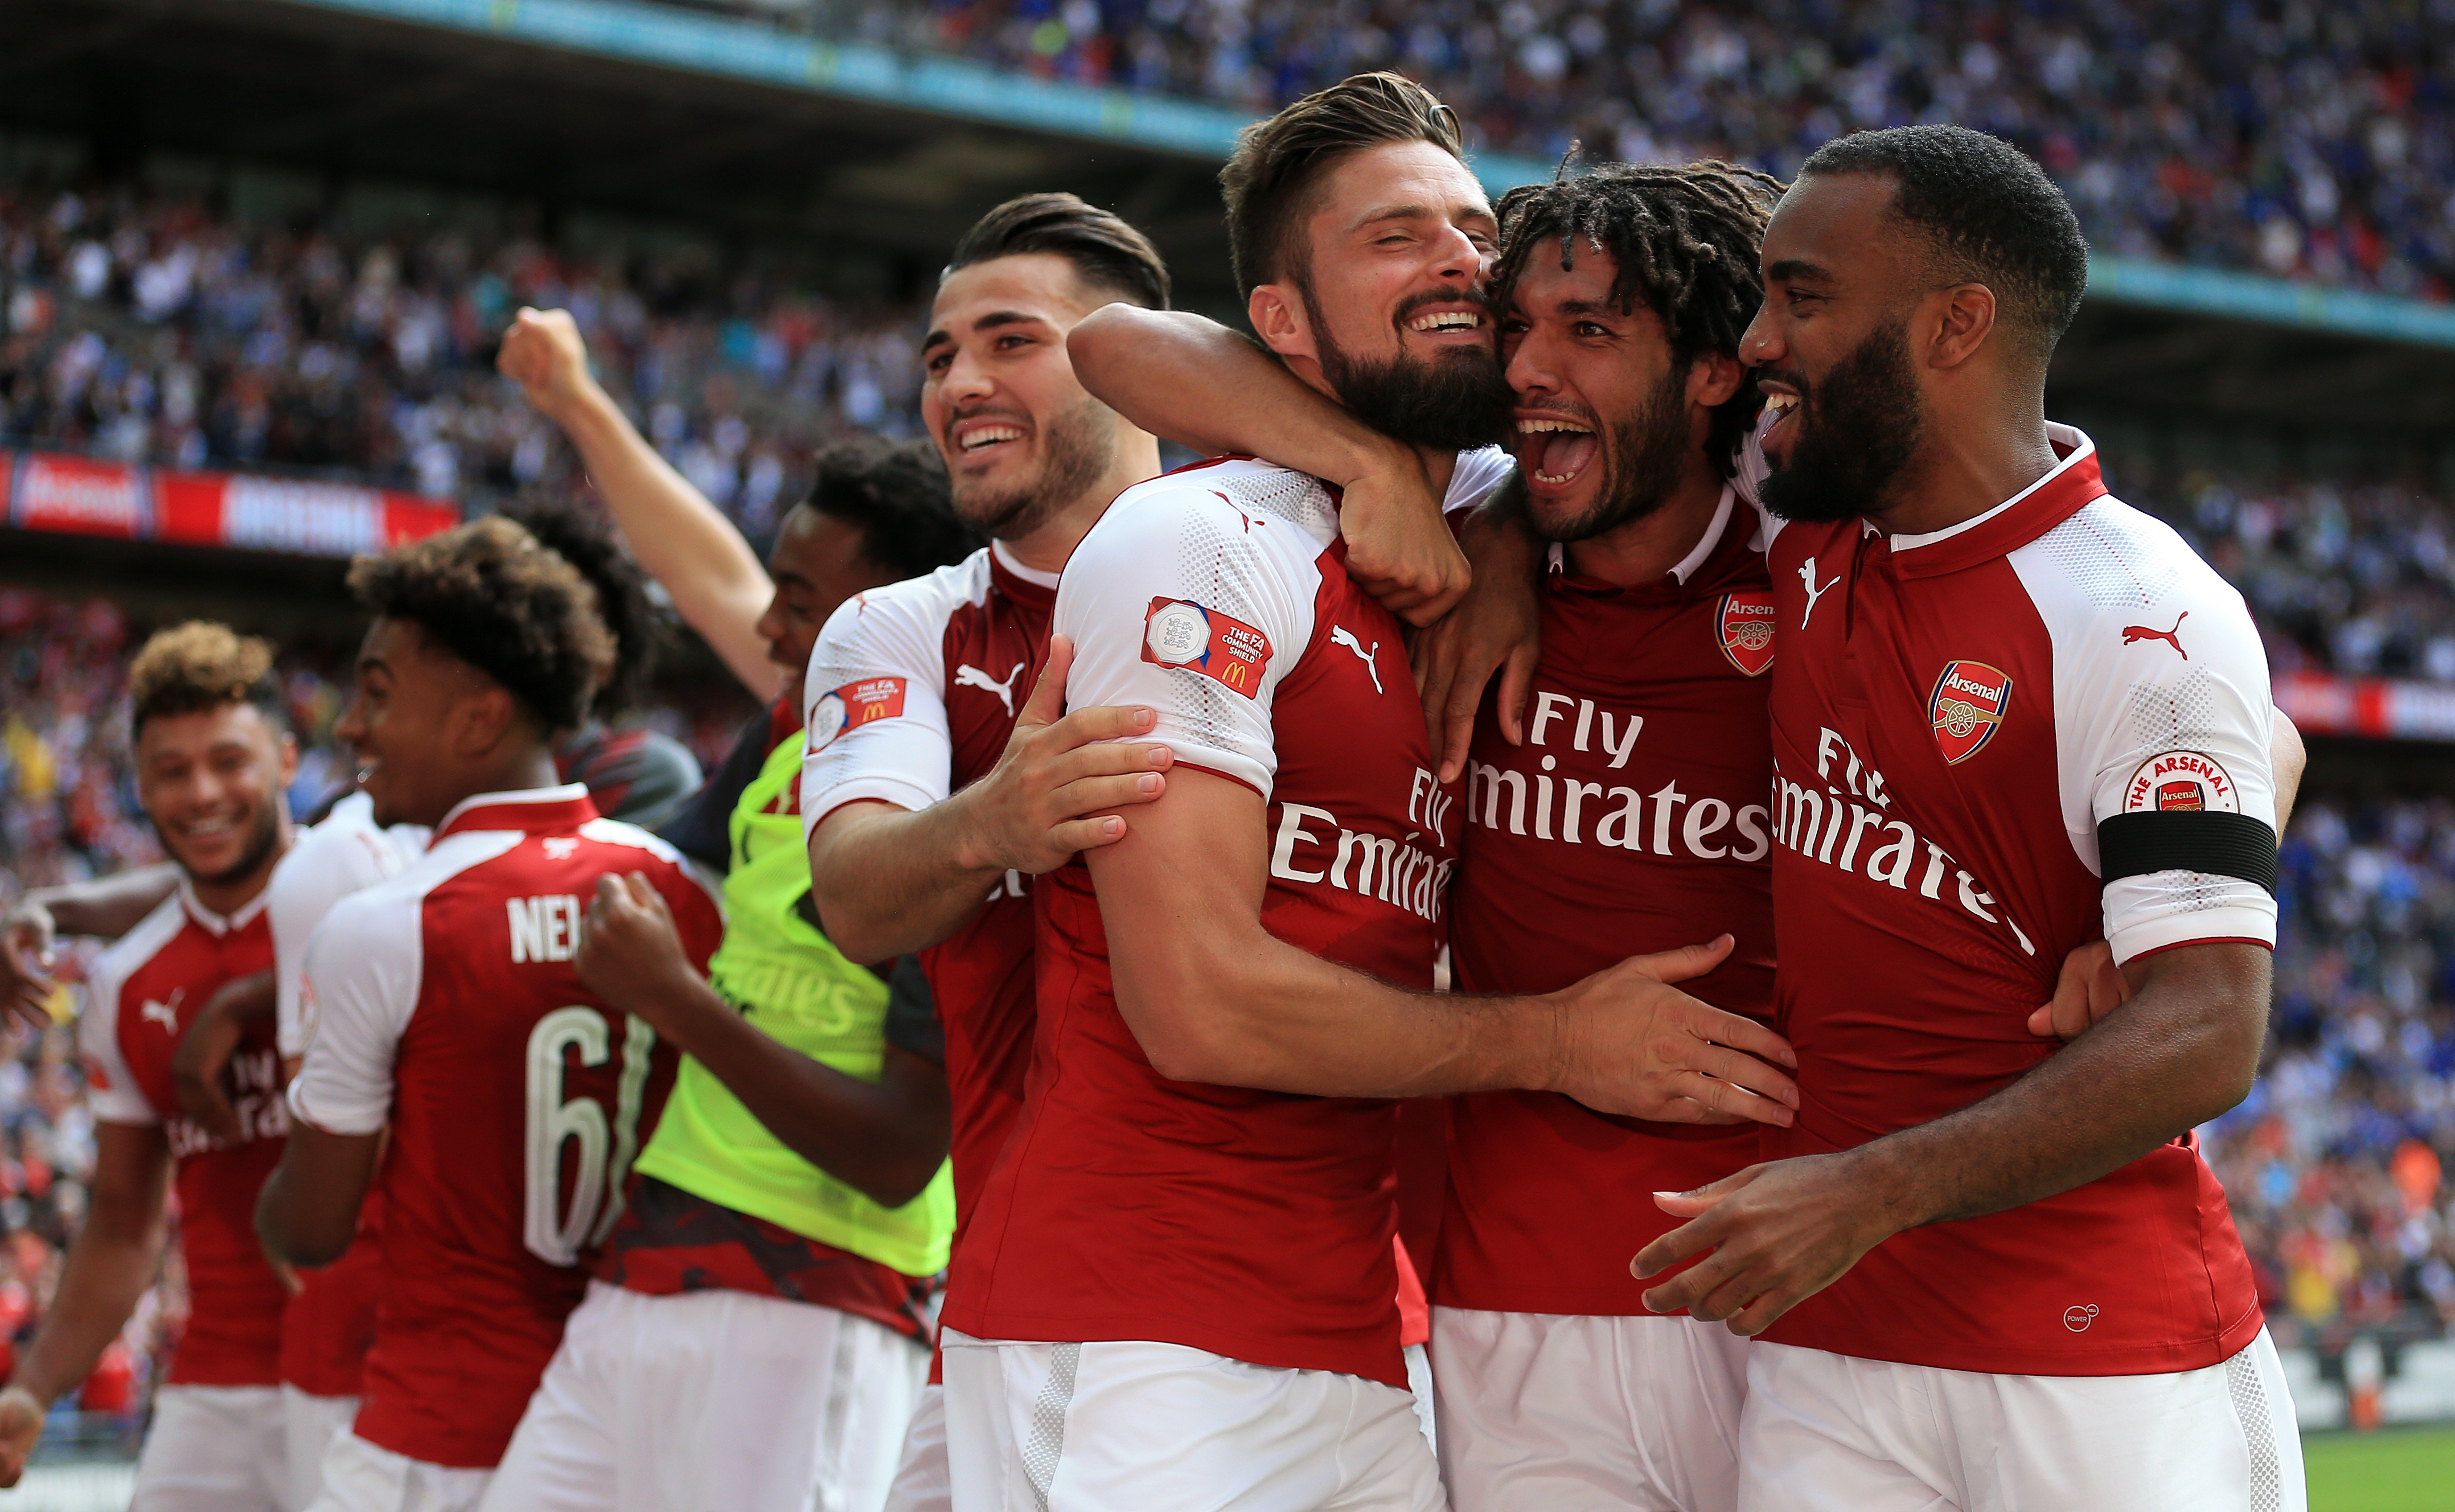 Arsenal's Olivier Giroud (centre) celebrates after scoring the winning penalty to win the Community Shield at Wembley